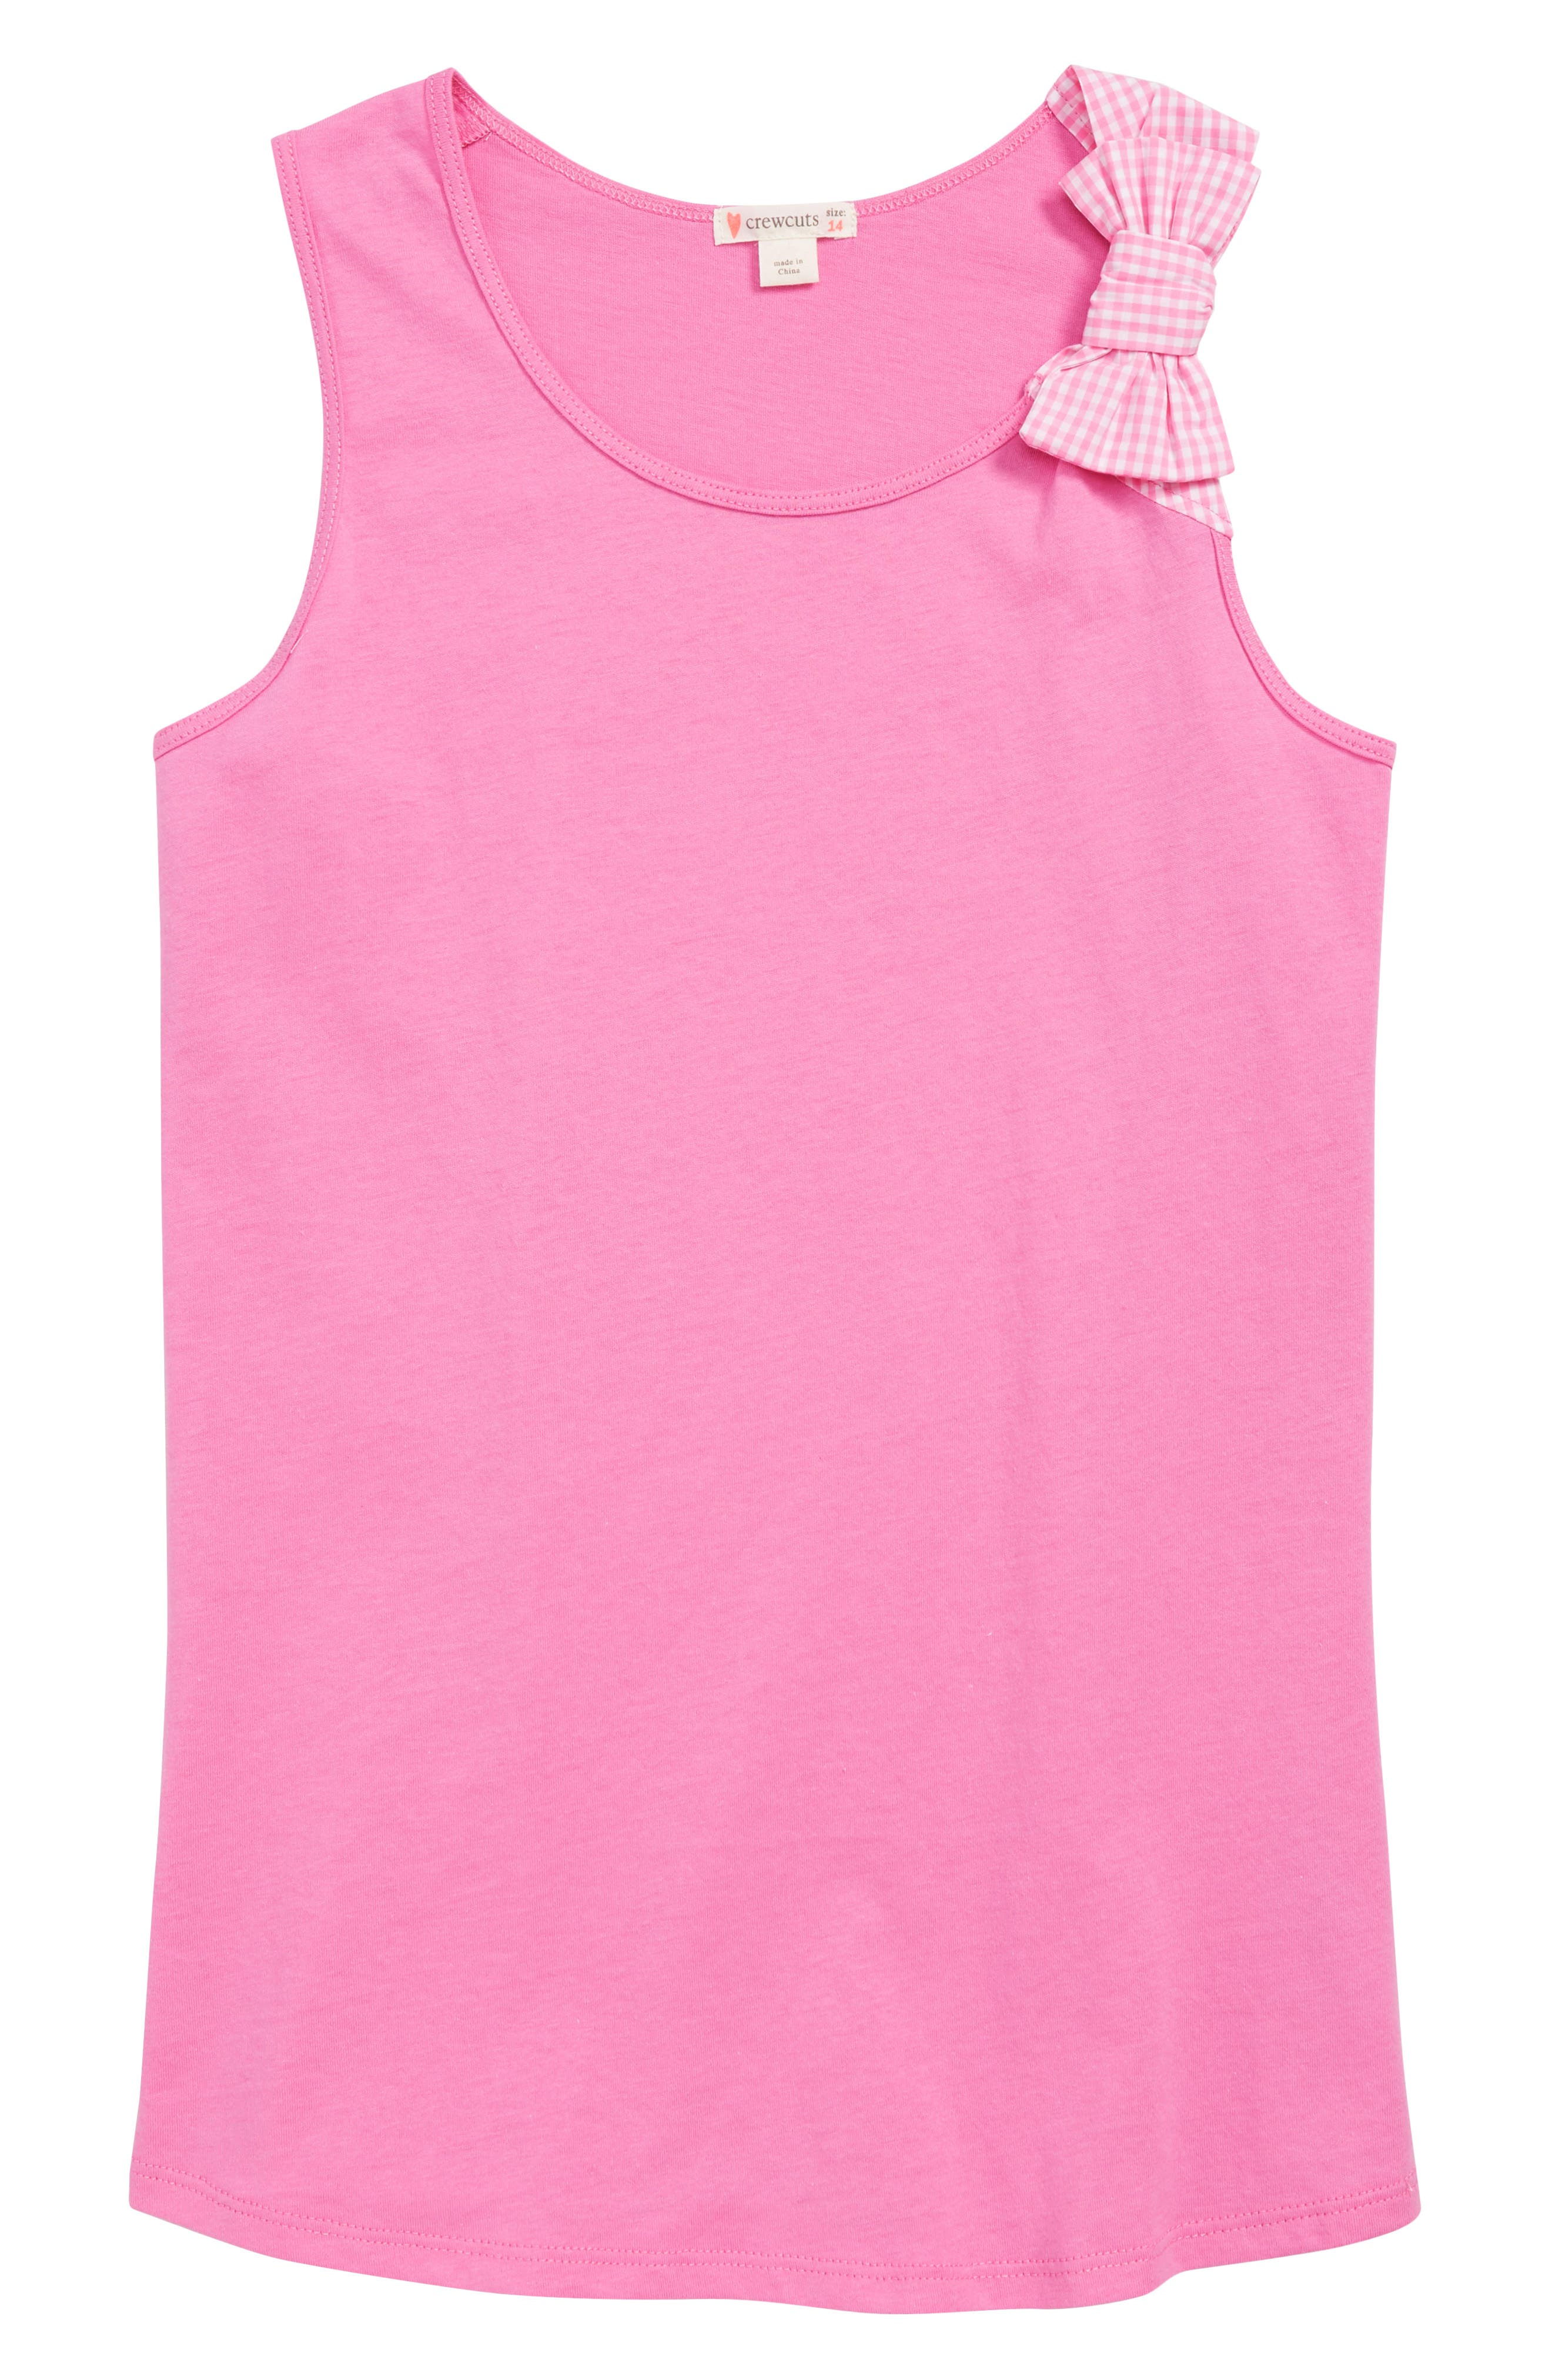 CREWCUTS BY J.CREW,                             Bow Tank Top,                             Main thumbnail 1, color,                             653